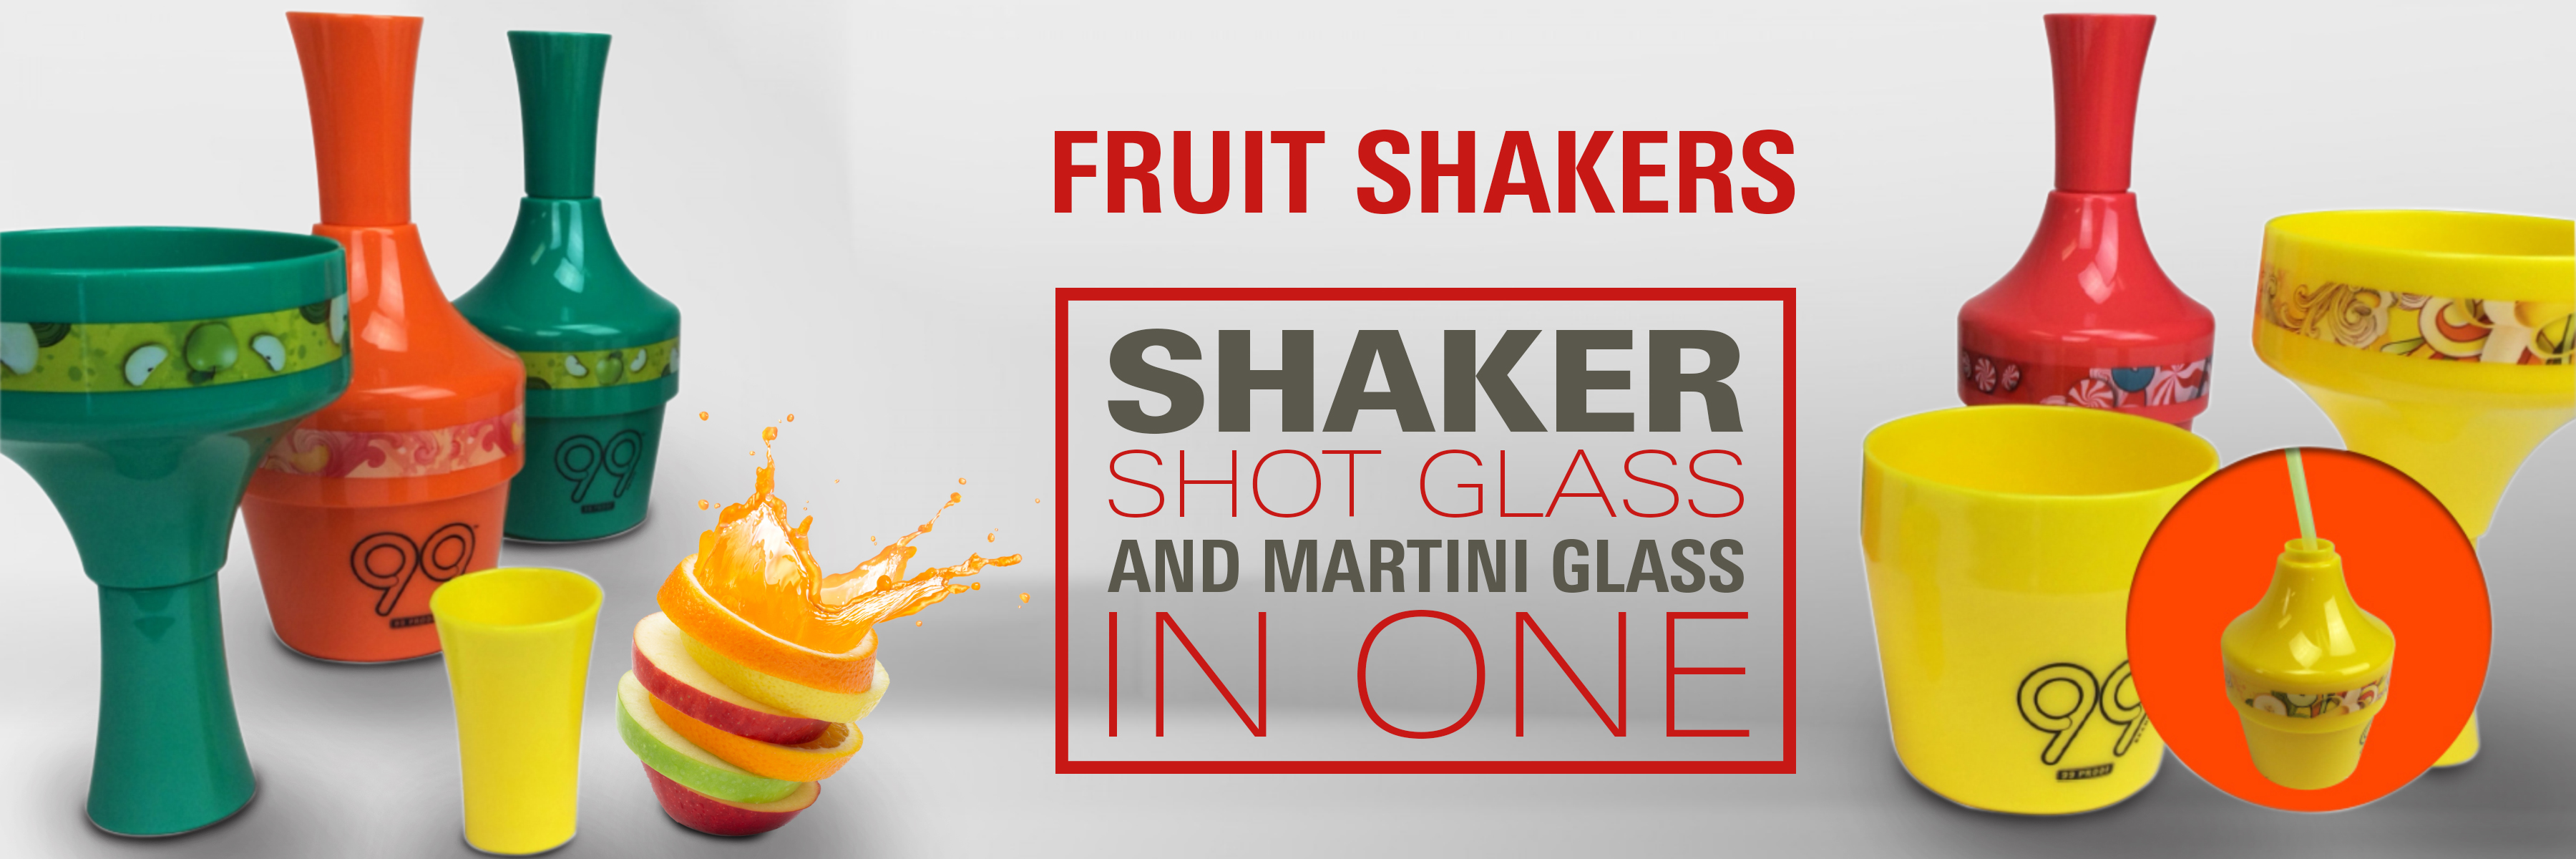 3-in-1-Multi-Use-Fruit-Shaker